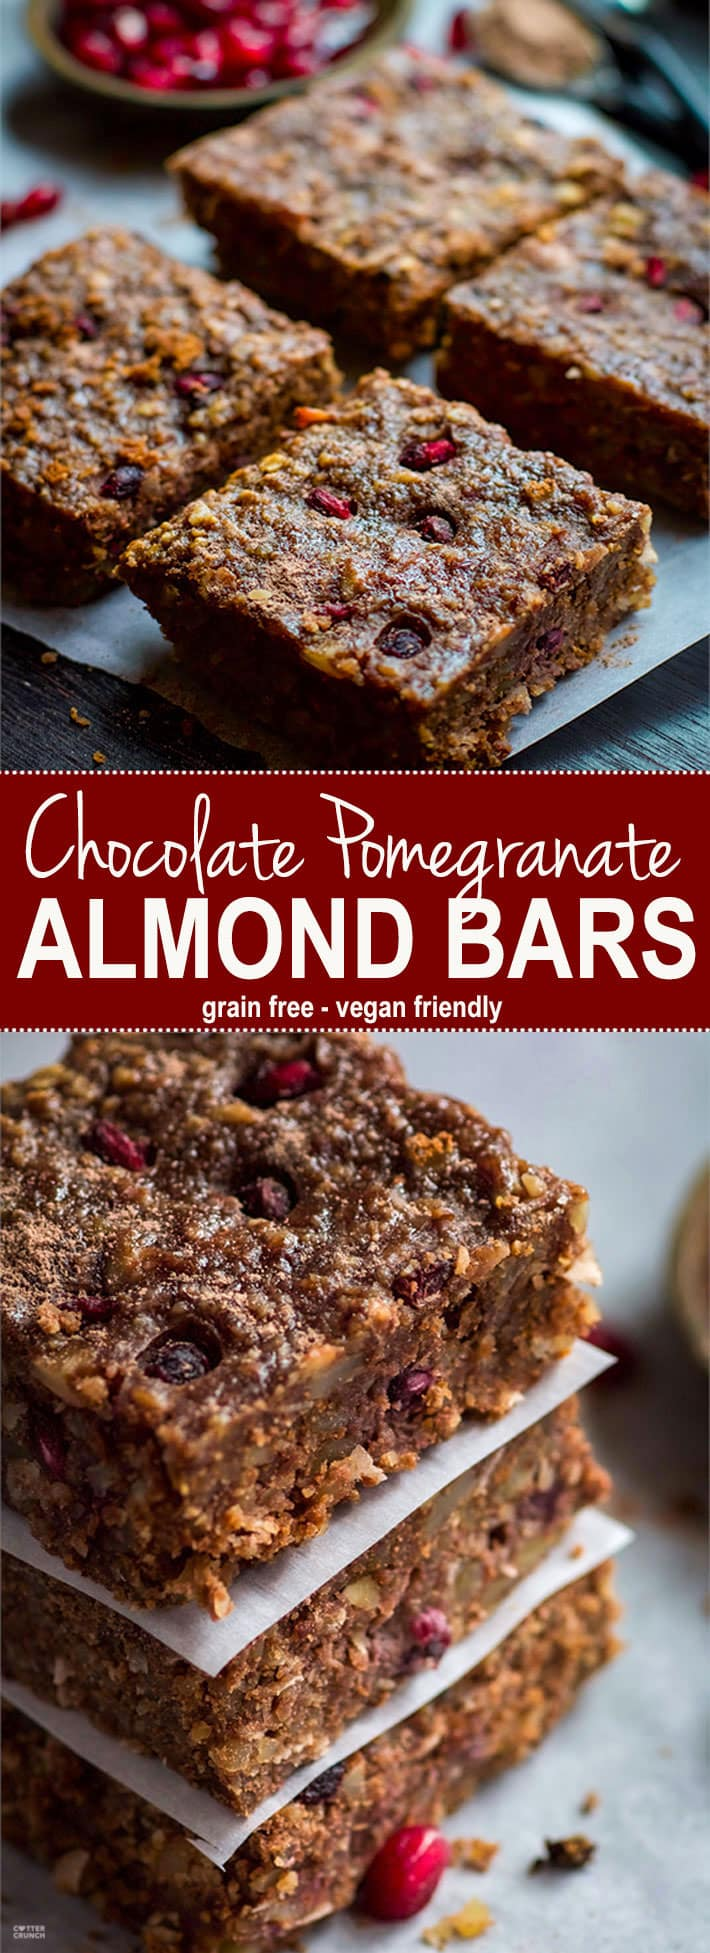 Gluten Free Chocolate Almond Bars with Pomegranate! Oh heavens yes! A Vegan friendly and Gluten Free Chocolate Bar you can have for breakfast, snack, or dessert! Packed with Antioxidants (cocoa, almonds, pomegranate) and bursting with flavor. Healthy yet satisfying. www.cottercrunch.com